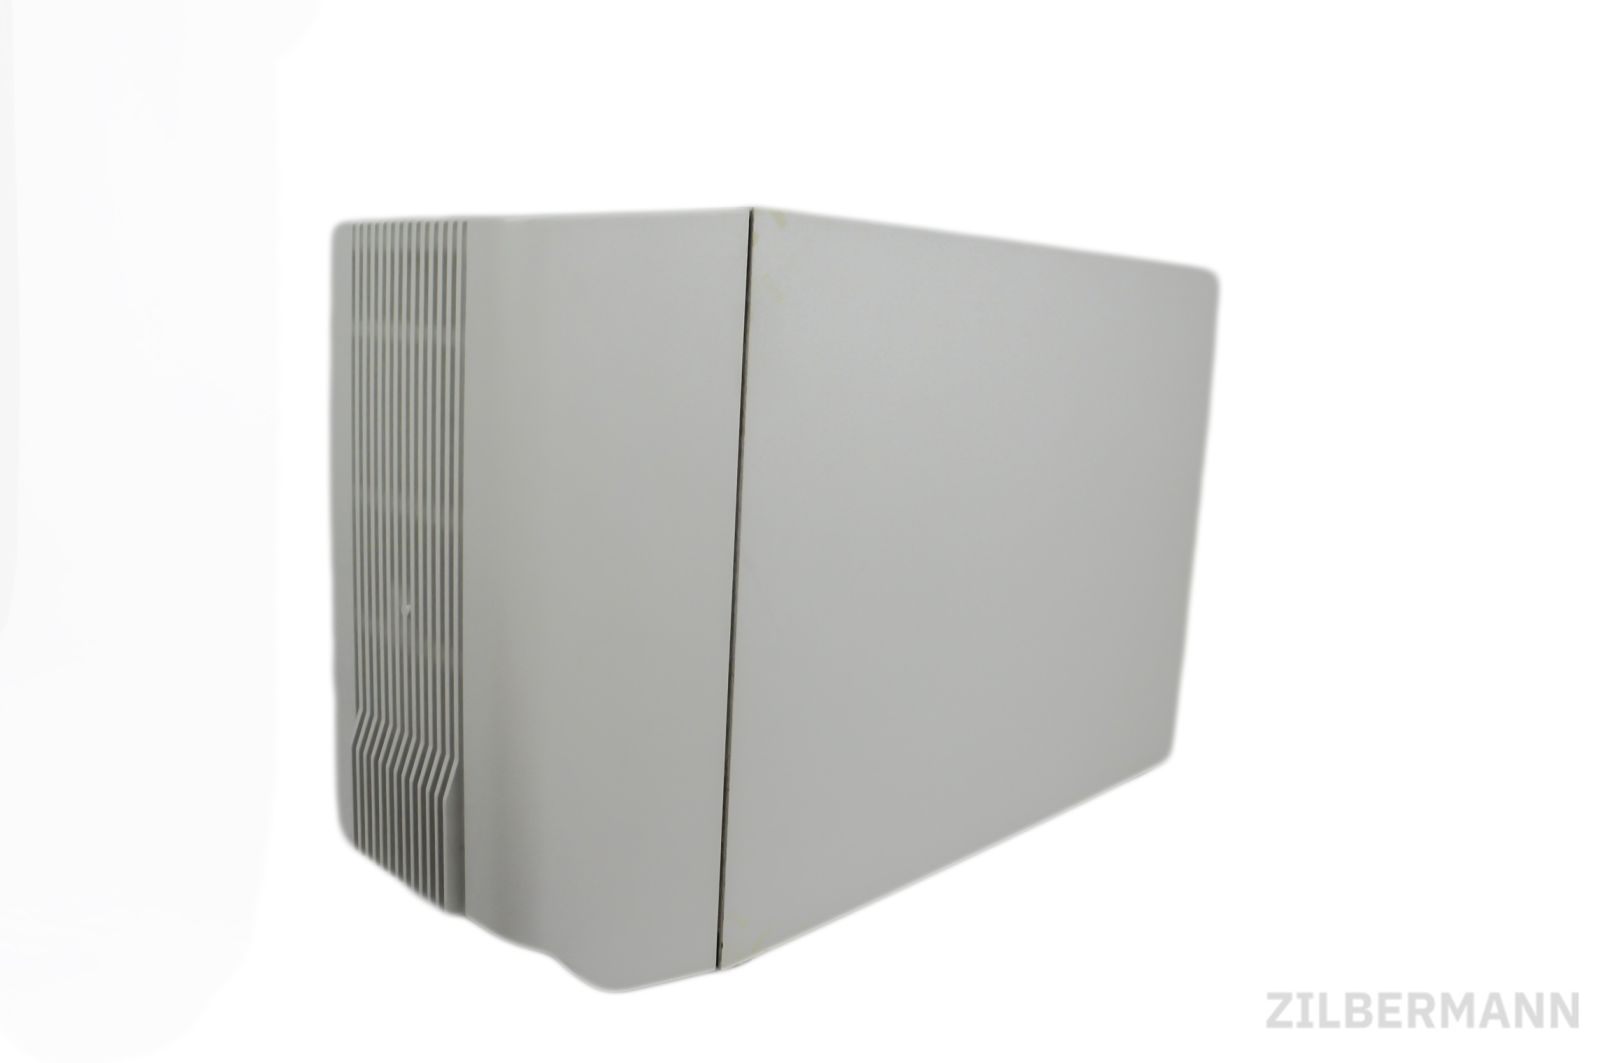 Bose_Acoustimass_5_series_IV_Powered_Subwoofer_Aktiv_Weiss_07